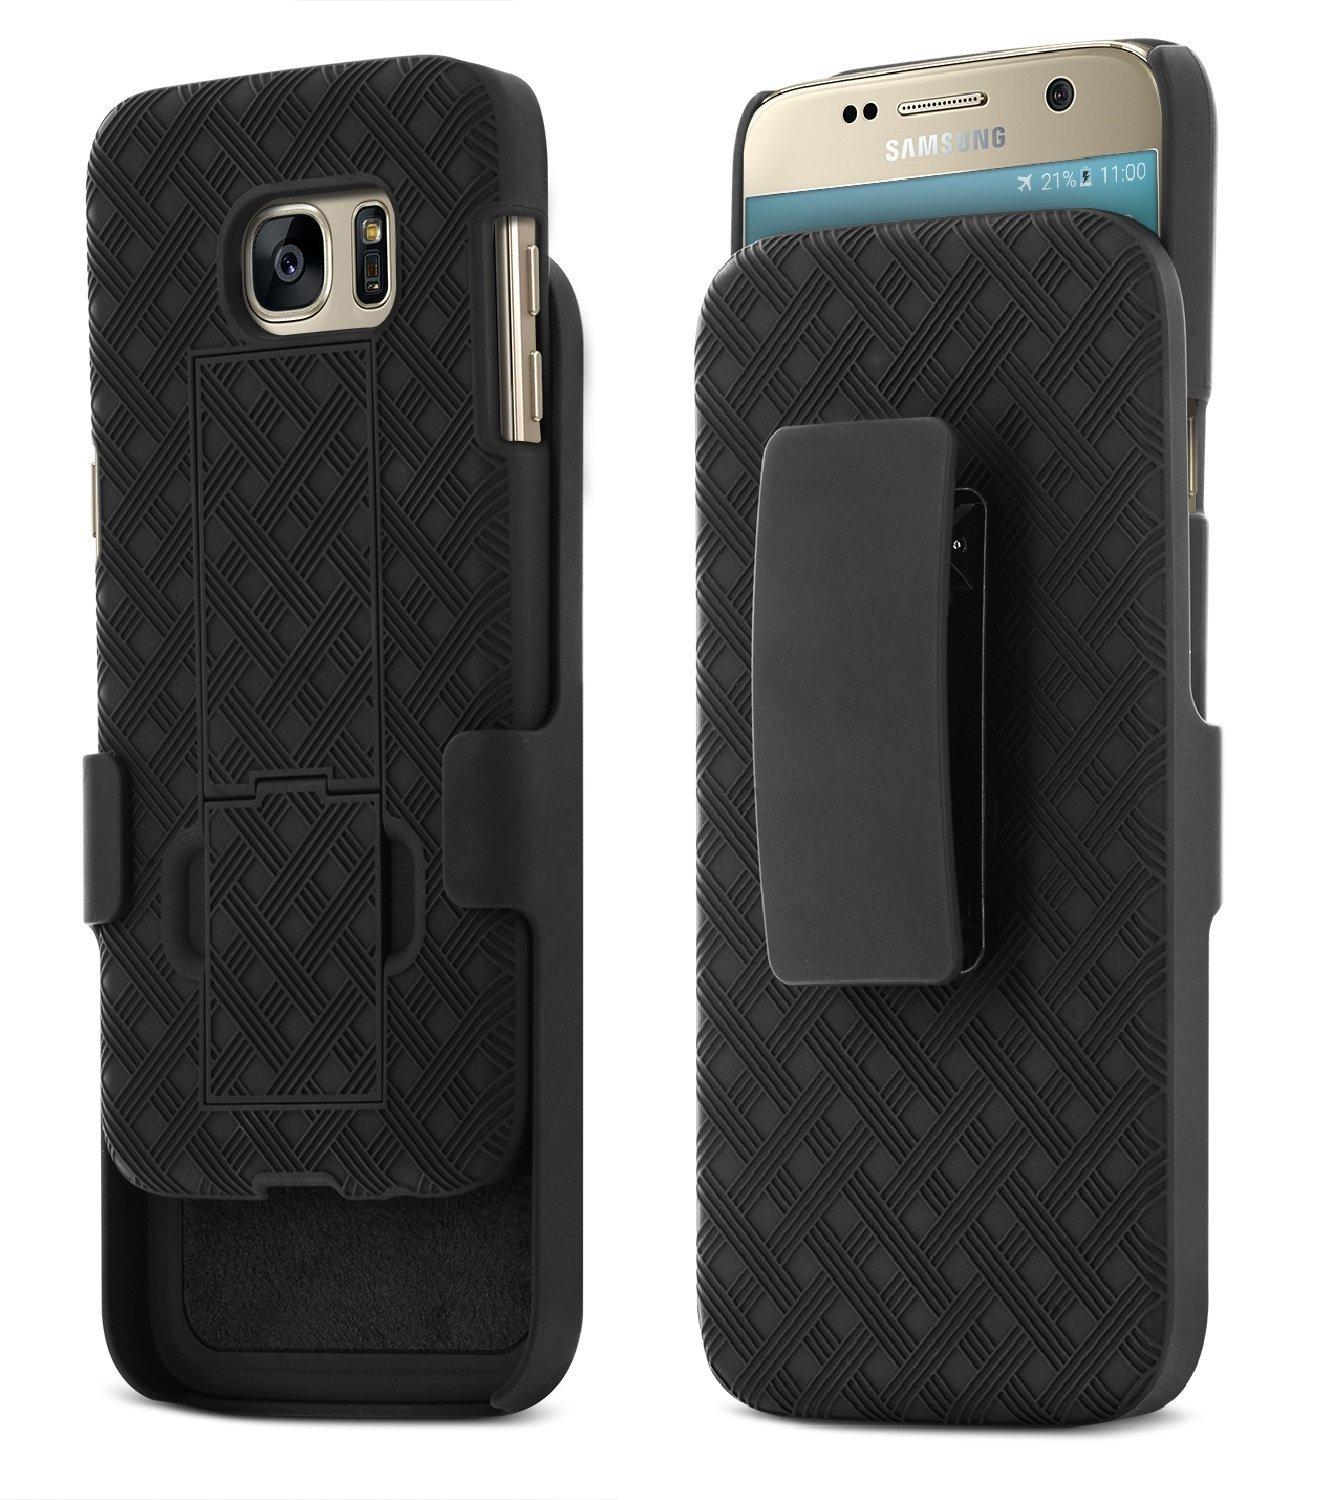 Galaxy S7 Case, Aduro Shell & Holster COMBO Case Super Slim Shell Case w/Built-In Kickstand + Swivel Belt Clip Holster for Samsung Galaxy S7 by Aduro (Image #1)